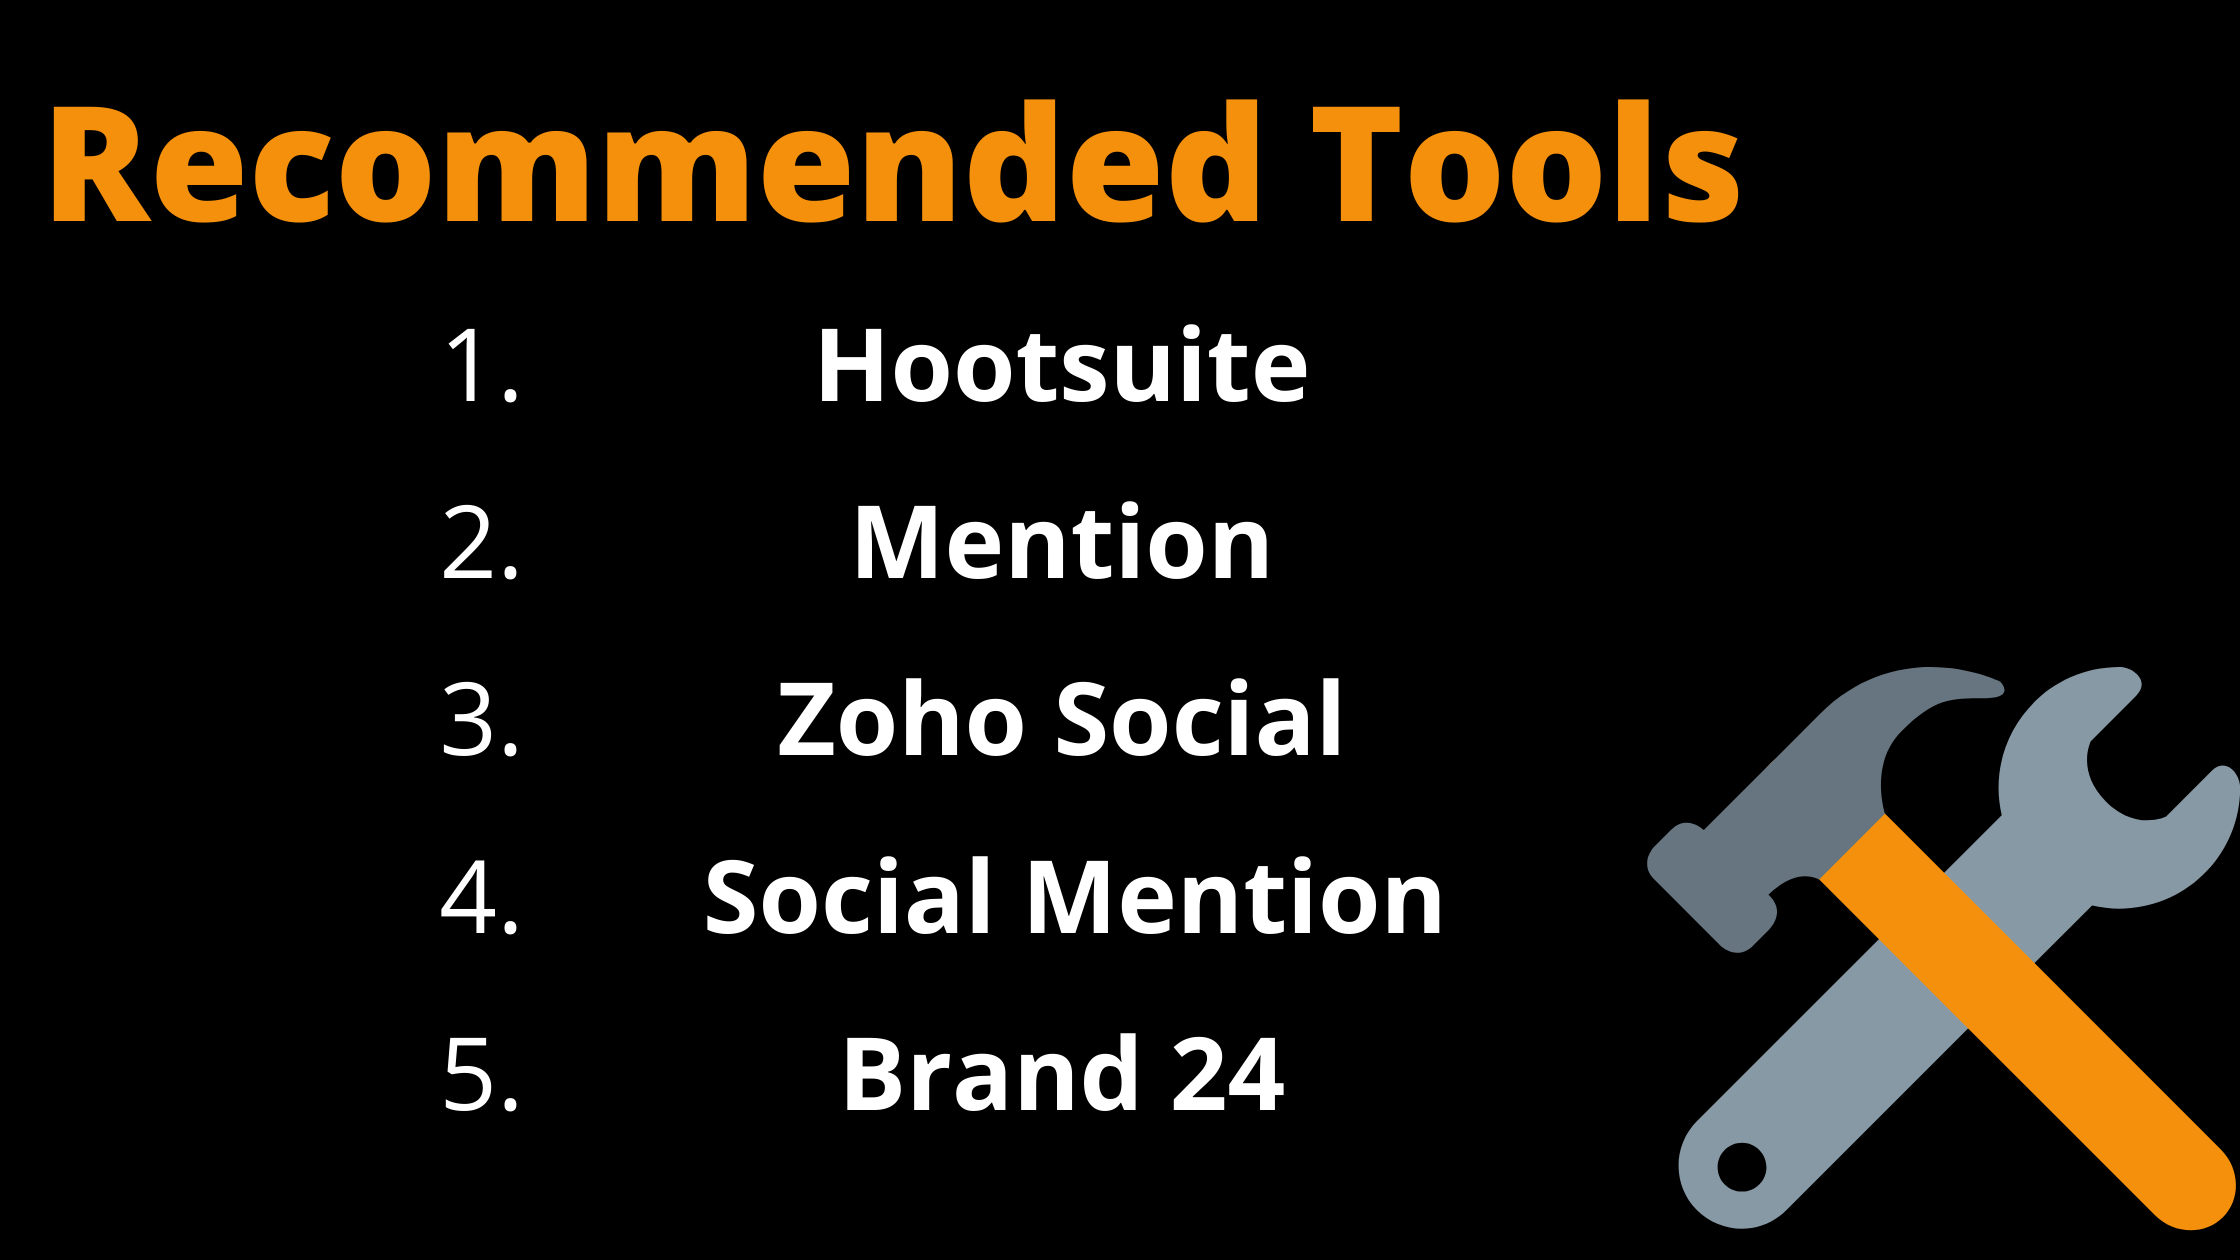 Recommended tools for social media listening